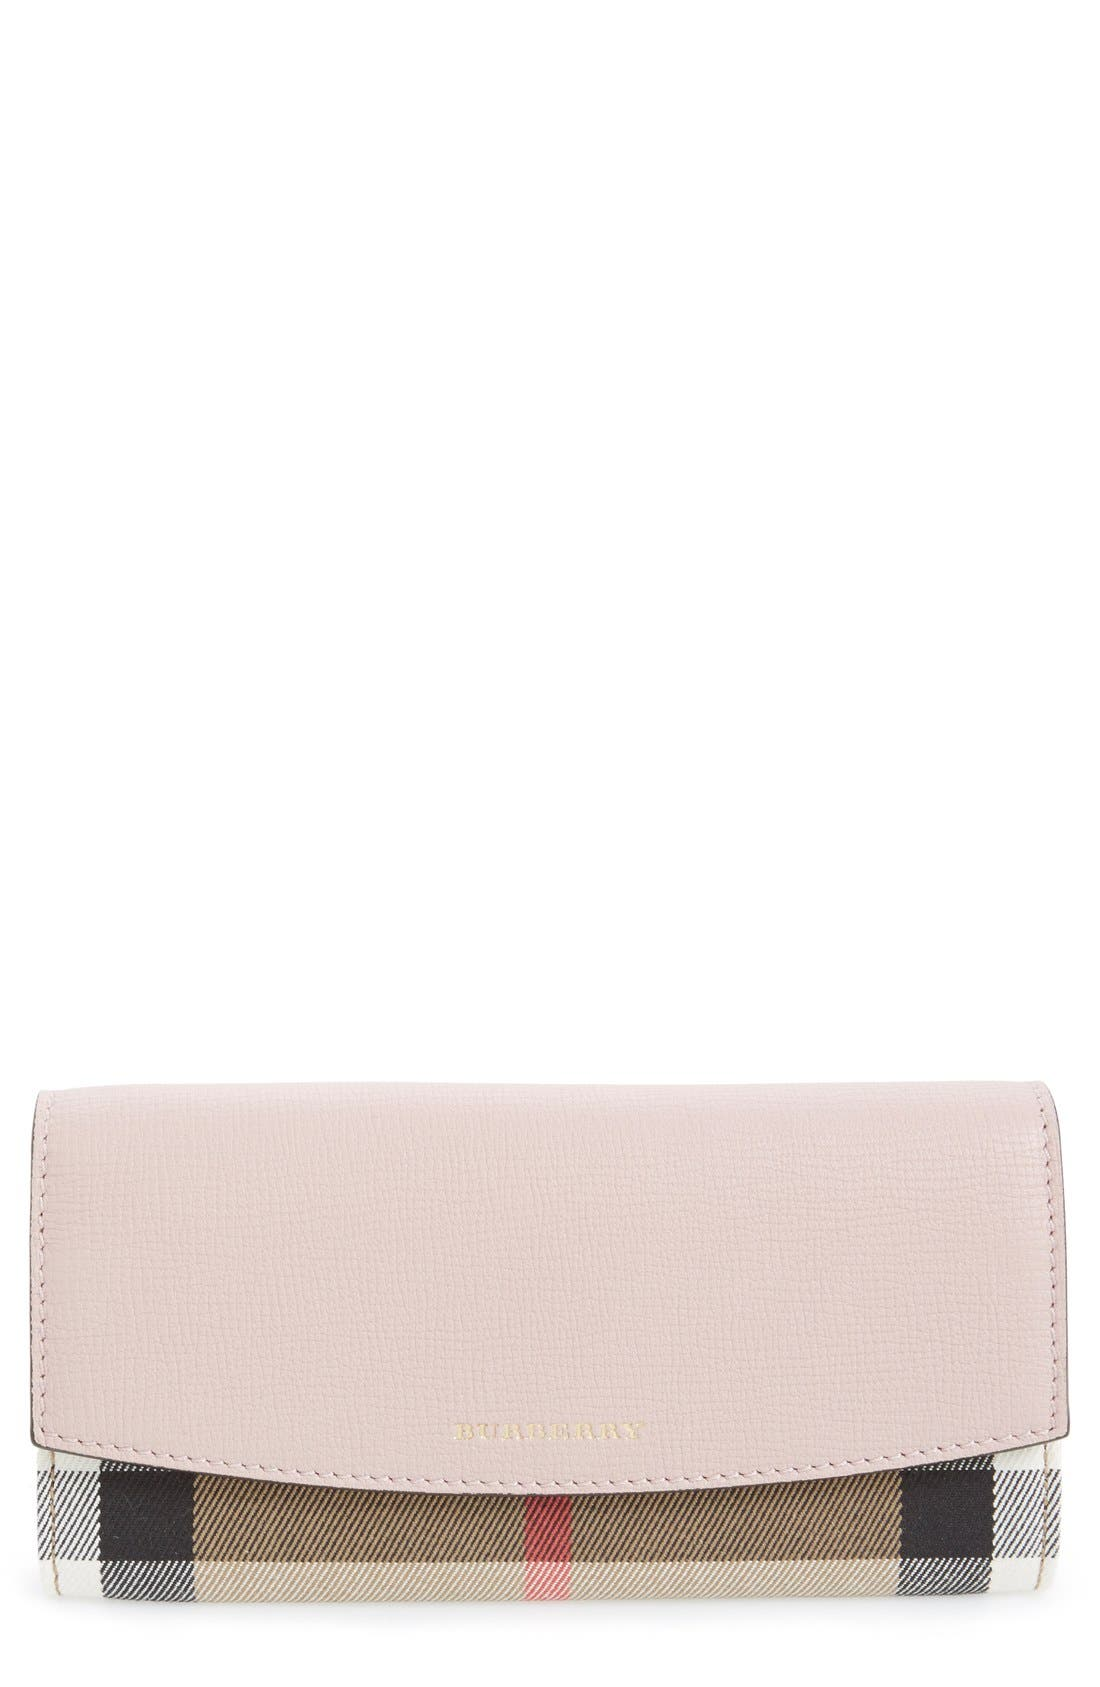 'Porter - Check' Continental Wallet,                             Main thumbnail 1, color,                             Pale Orchid